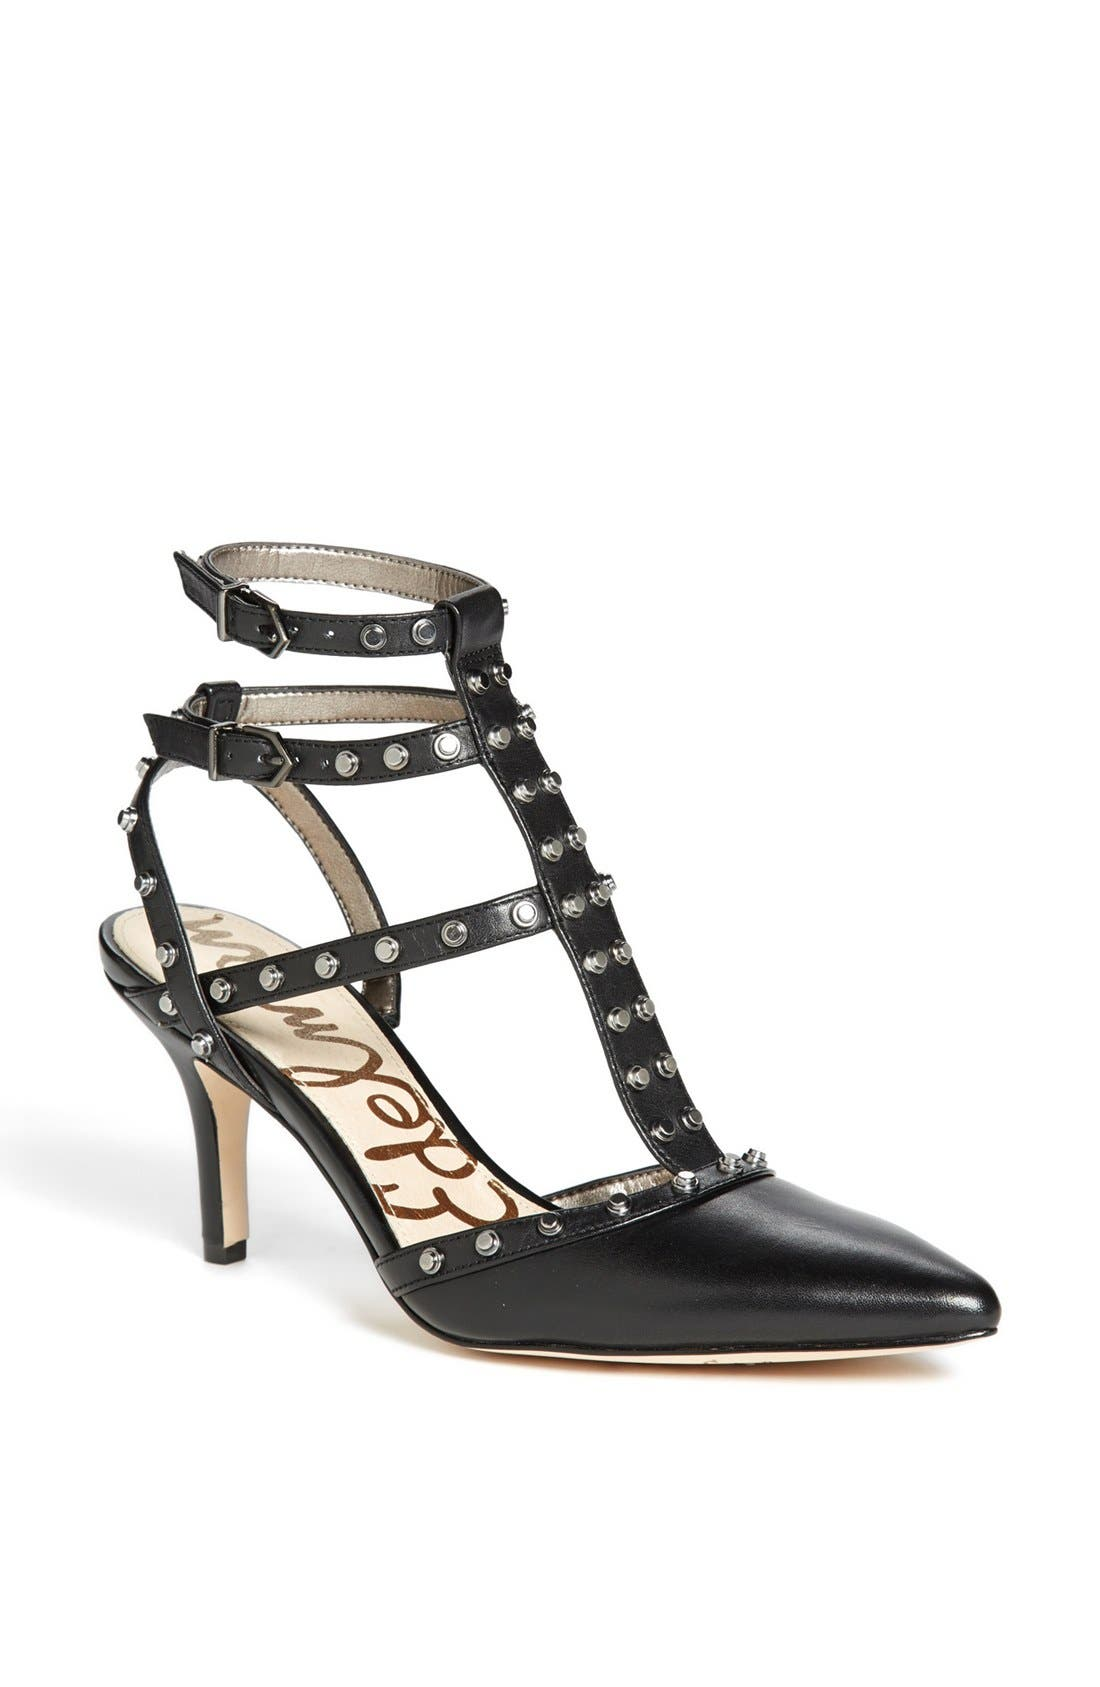 Alternate Image 1 Selected - Sam Edelman 'Ollie' T-Strap Pump